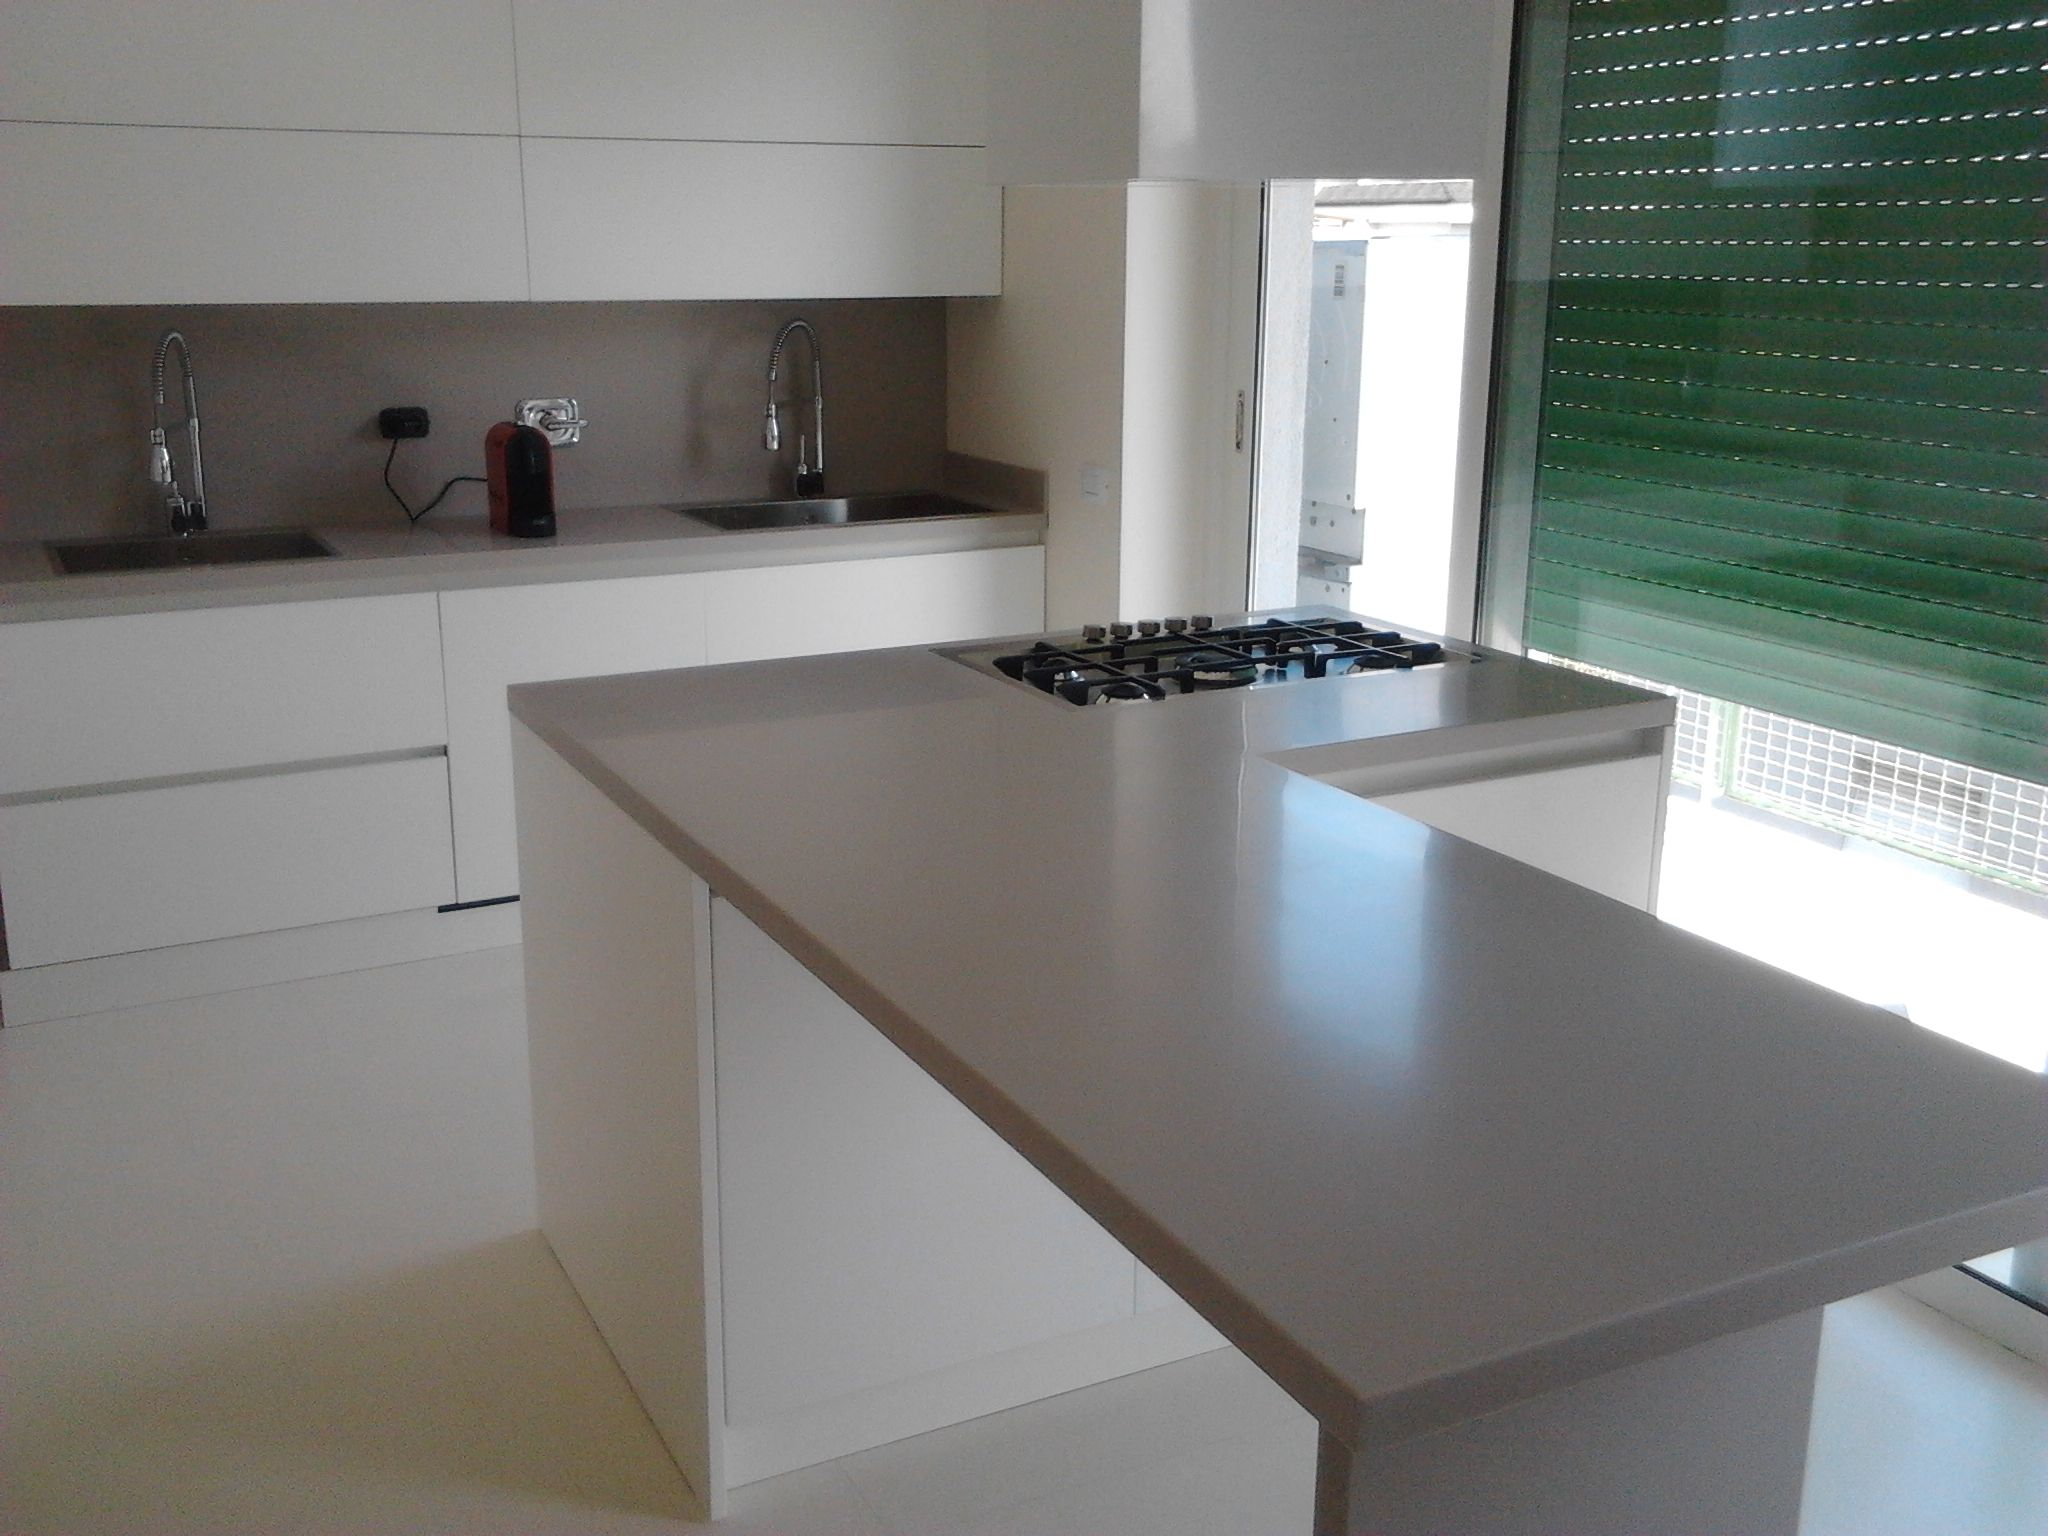 Kitchen in mdf doors white matt finishing and top in Corian solid ...